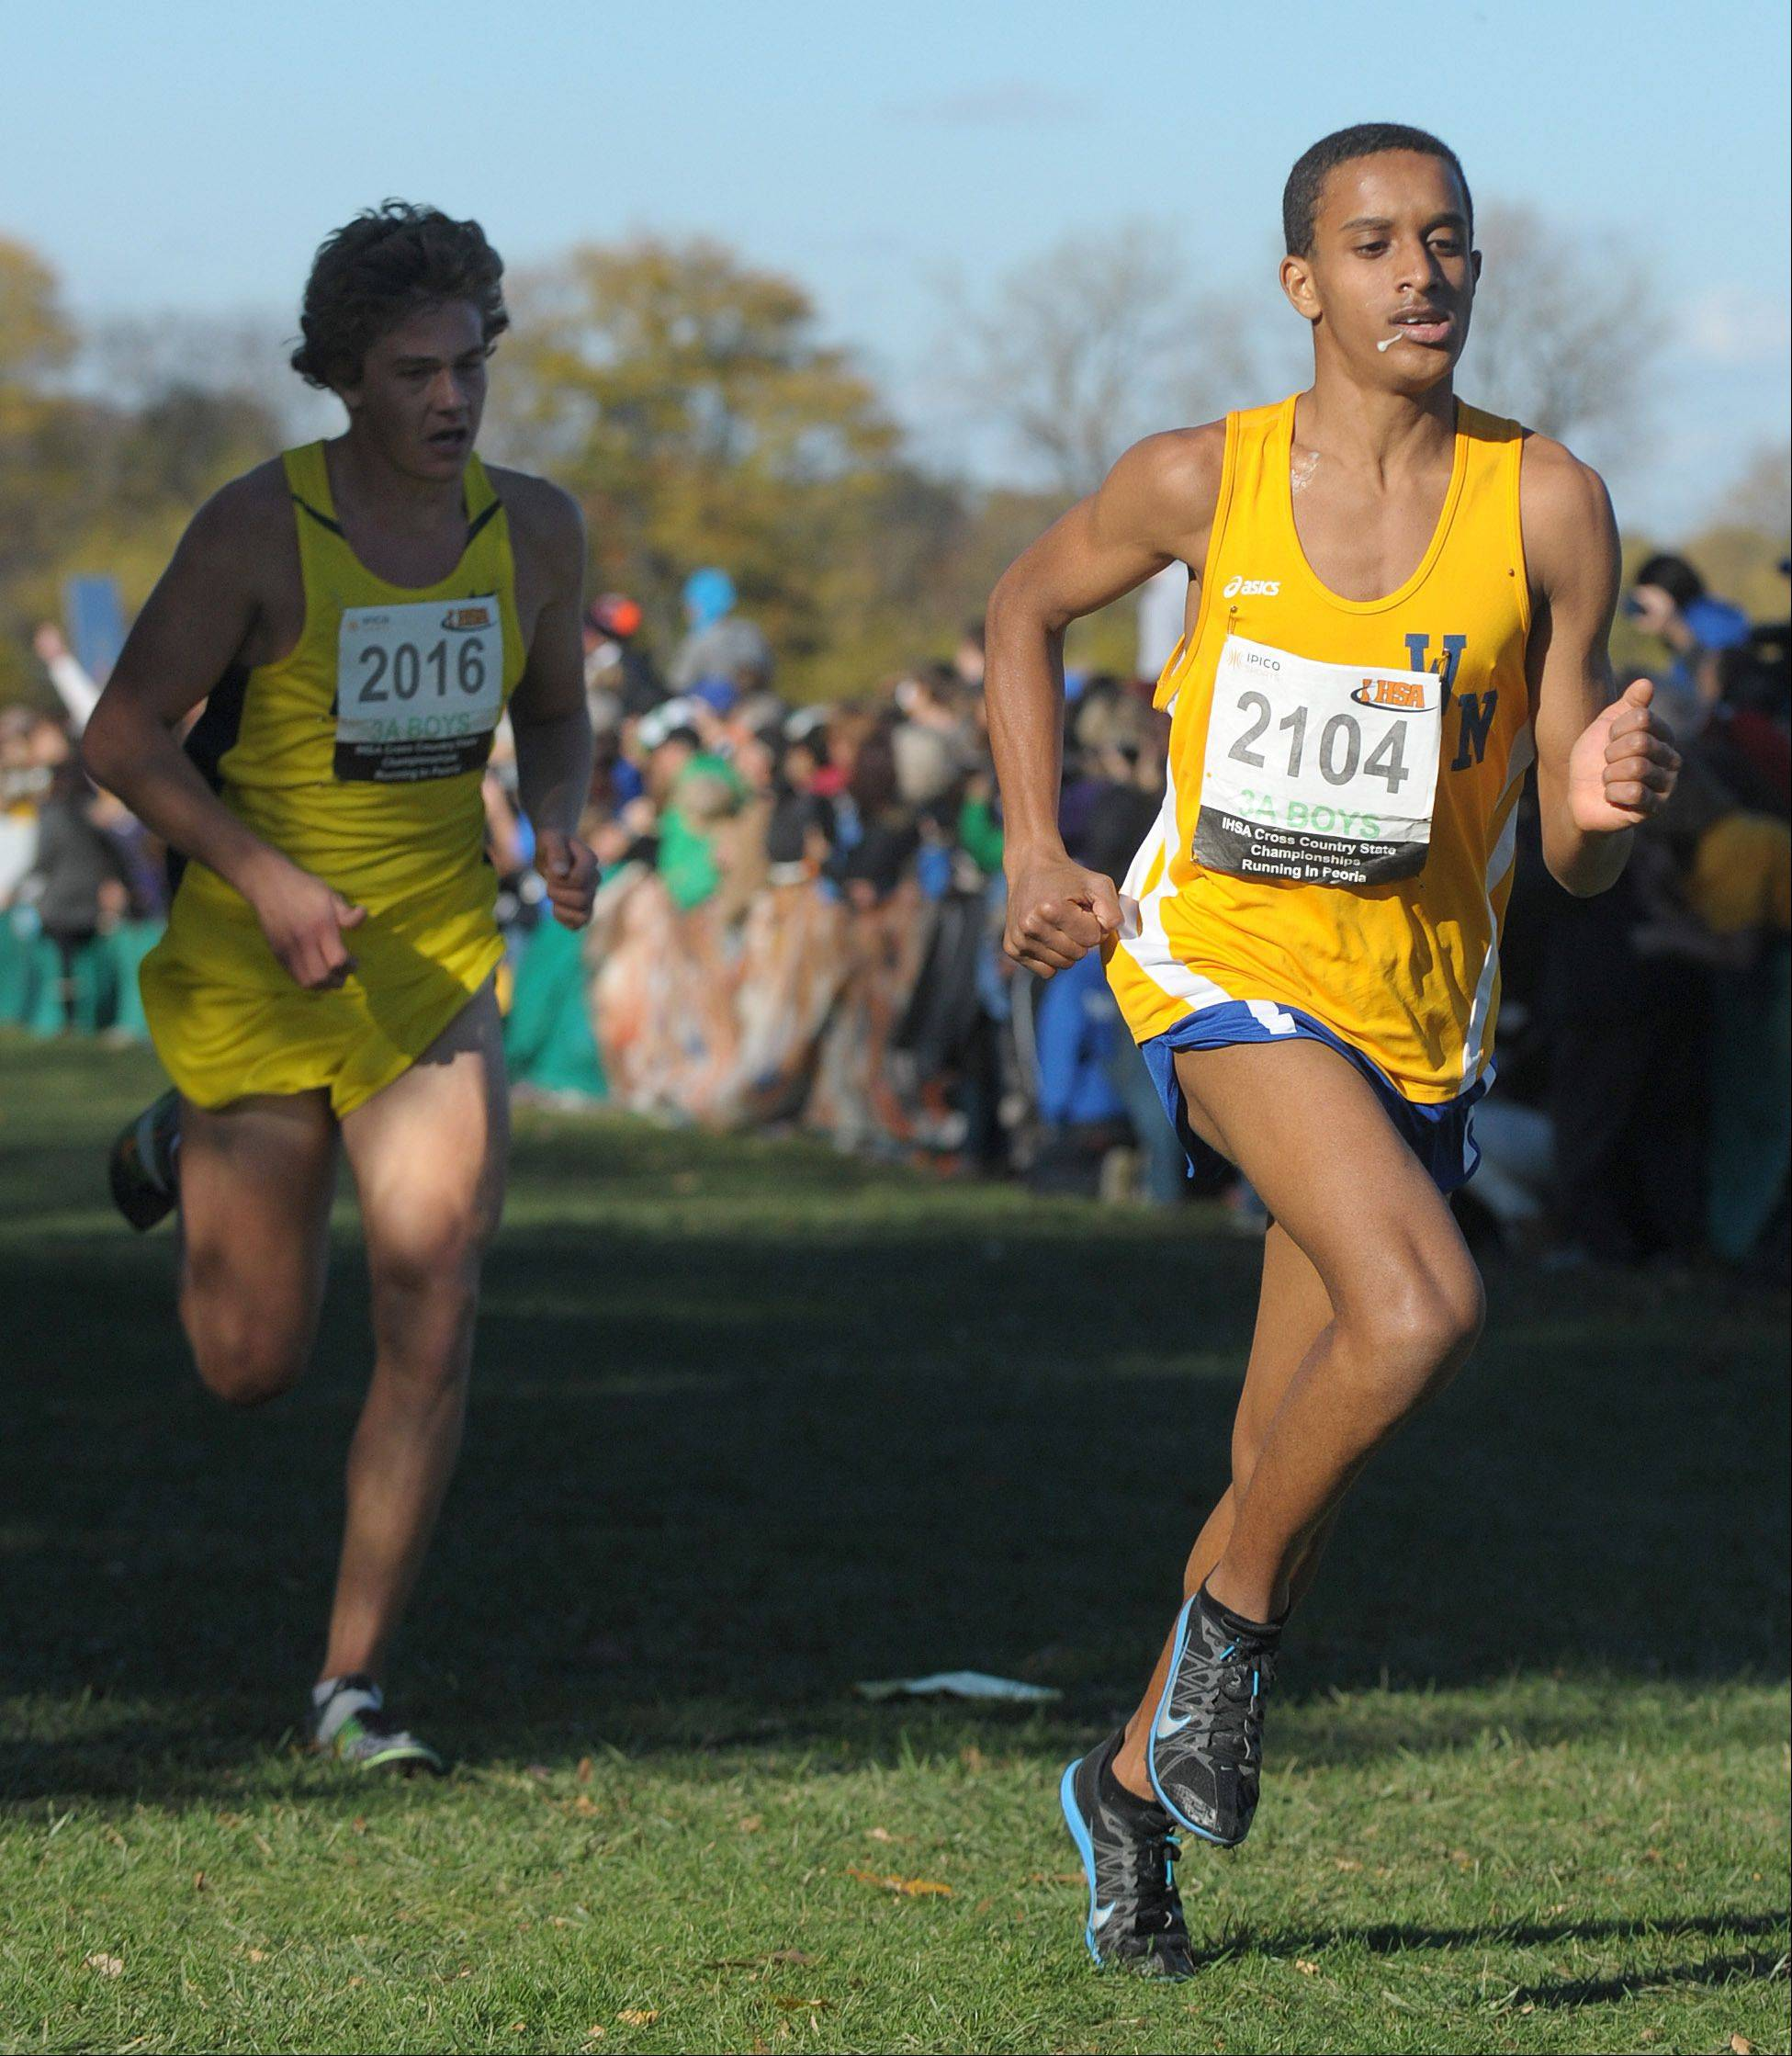 Wheaton North's Joseph Emmanuel takes 14th place (with Neuqua Valley's Nick Bushelle trailing) in the Class 3A IHSA cross country state final at Detweiller Park in Peoria on Saturday, November 9.